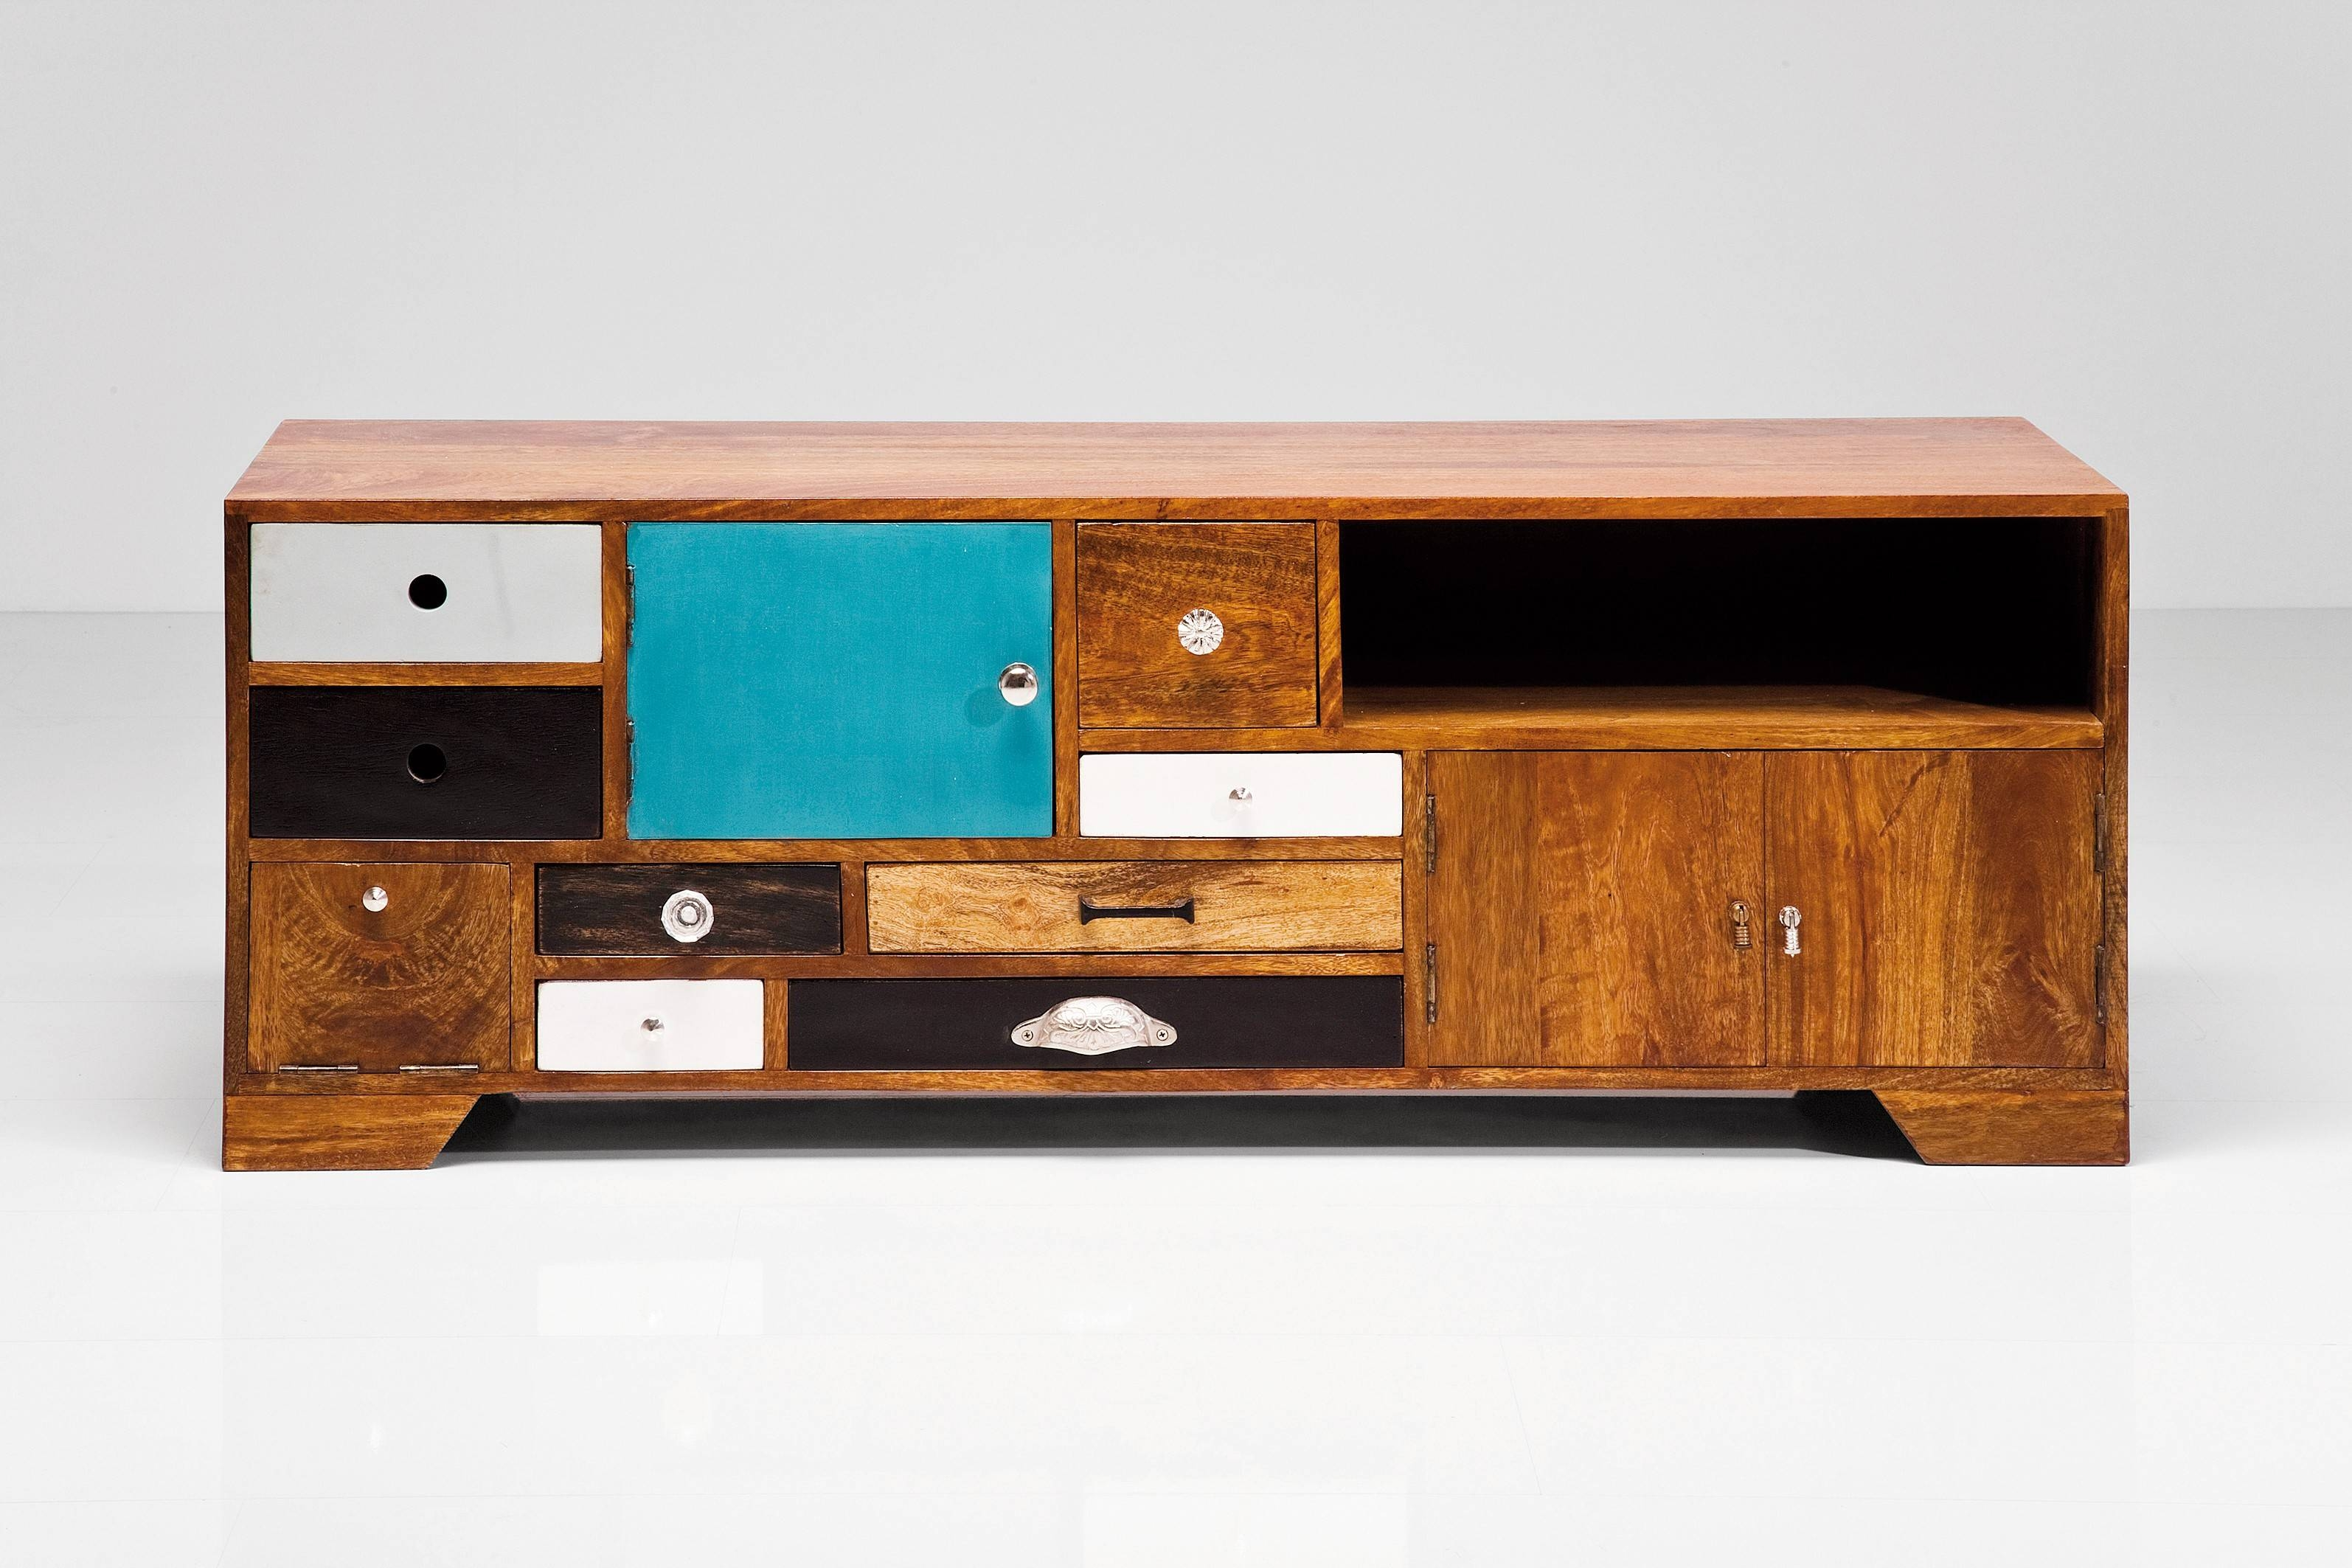 Upcycled Retro Sideboard And Media Uniti Love Retro | I Love Retro intended for Sideboard Units (Image 30 of 30)